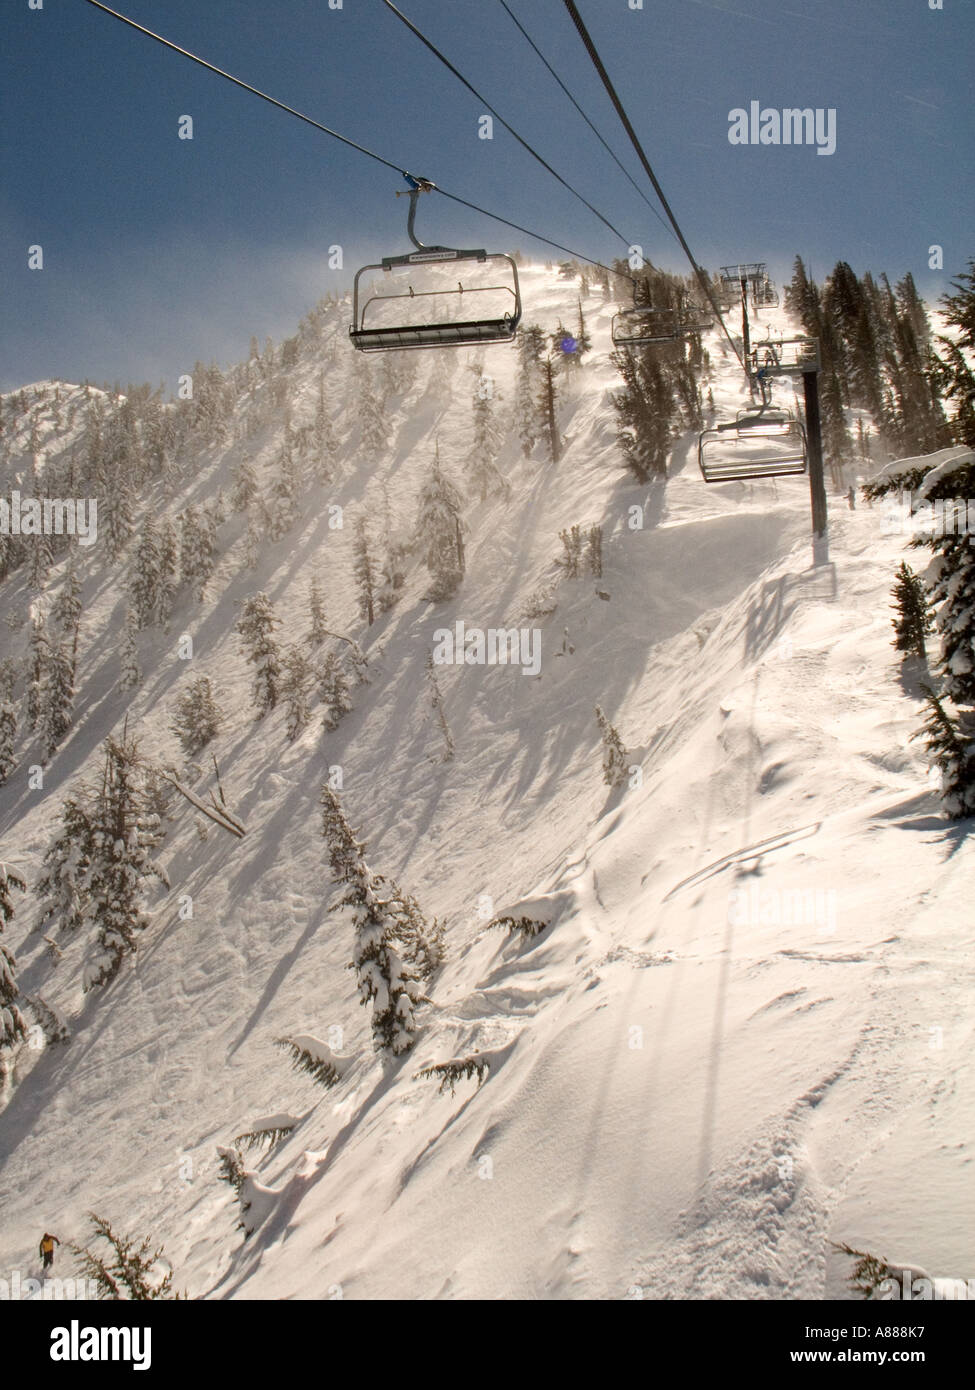 A view of the Chutes from the ski lift at Mt Rose Ski Area in the Sierras near Reno Nevada Stock Photo